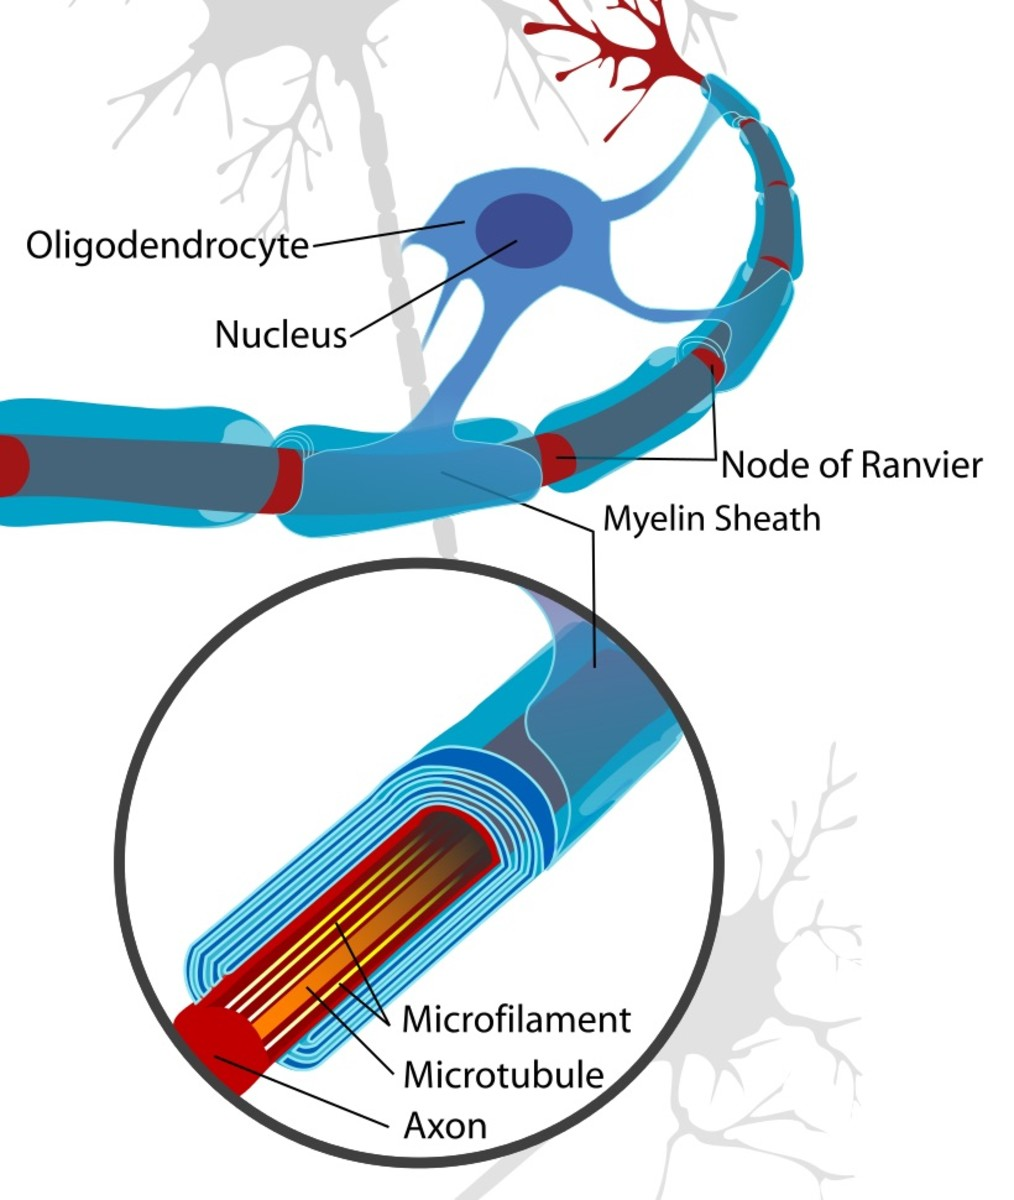 what is the relationship between schwann cells and myelin